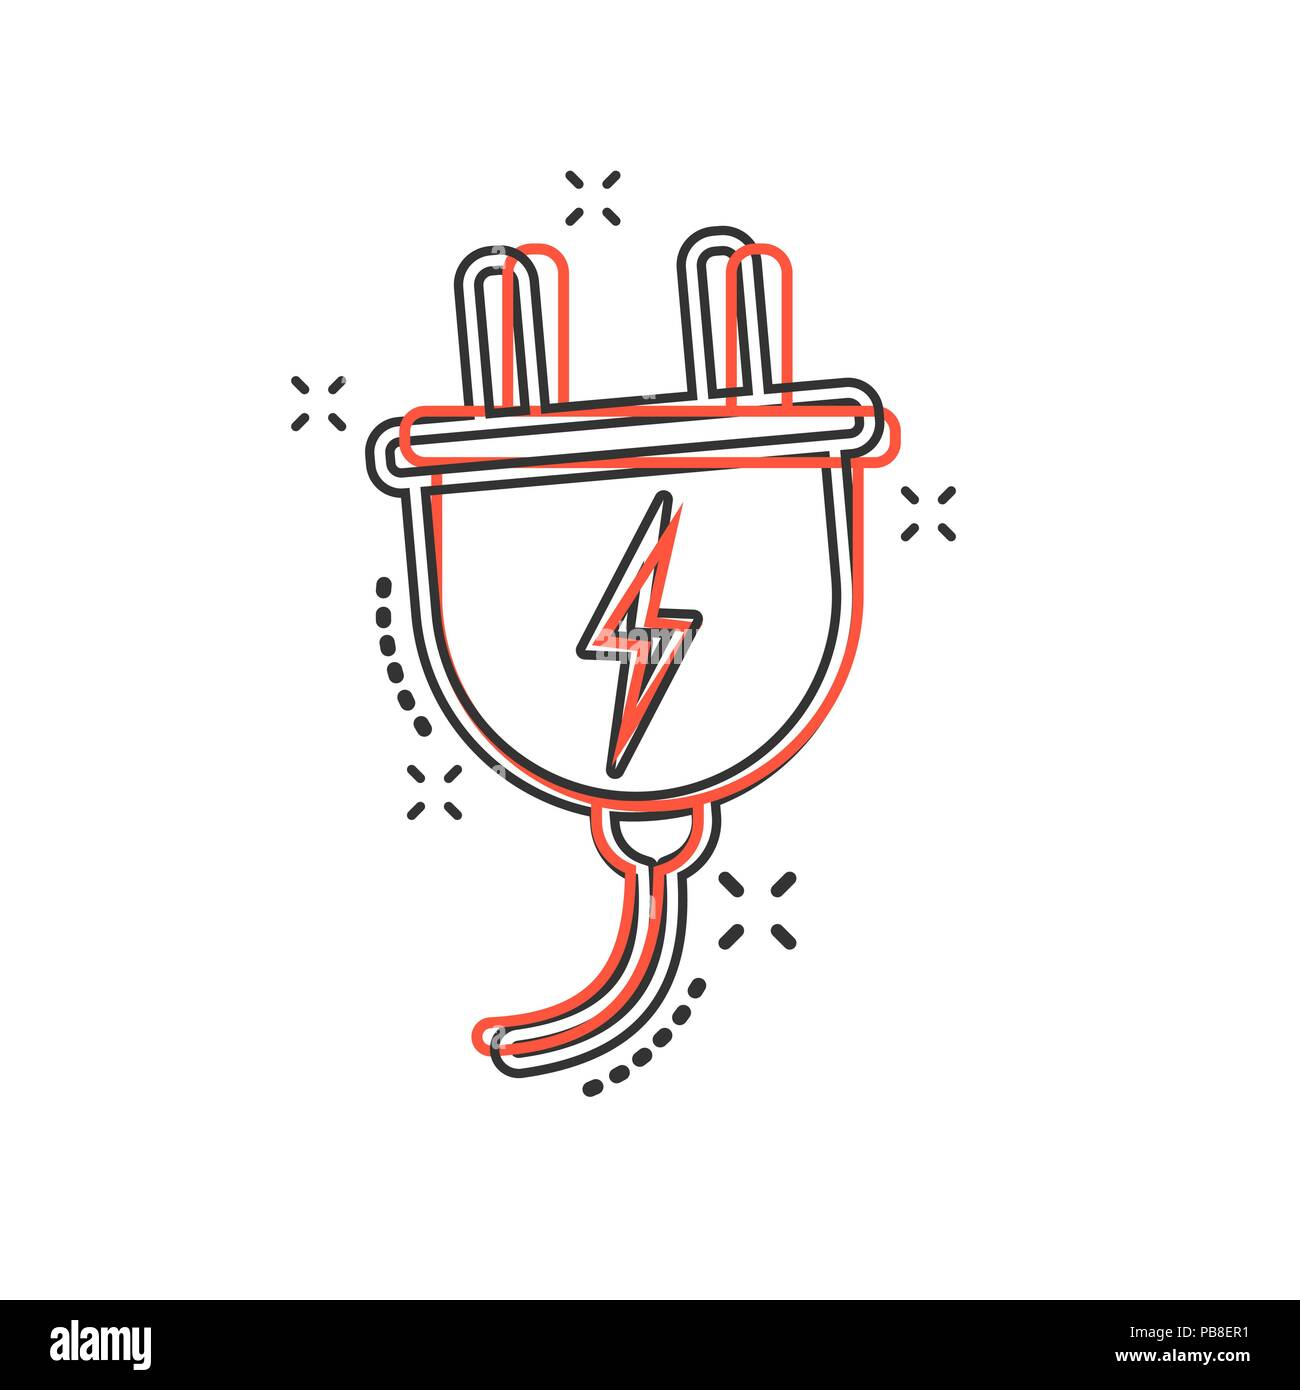 Vector Cartoon Electric Plug Icon In Comic Style Power Wire Cable Symbol For Electrical Wiring Diagram Sign Illustration Pictogram Business Splash Effect Concept